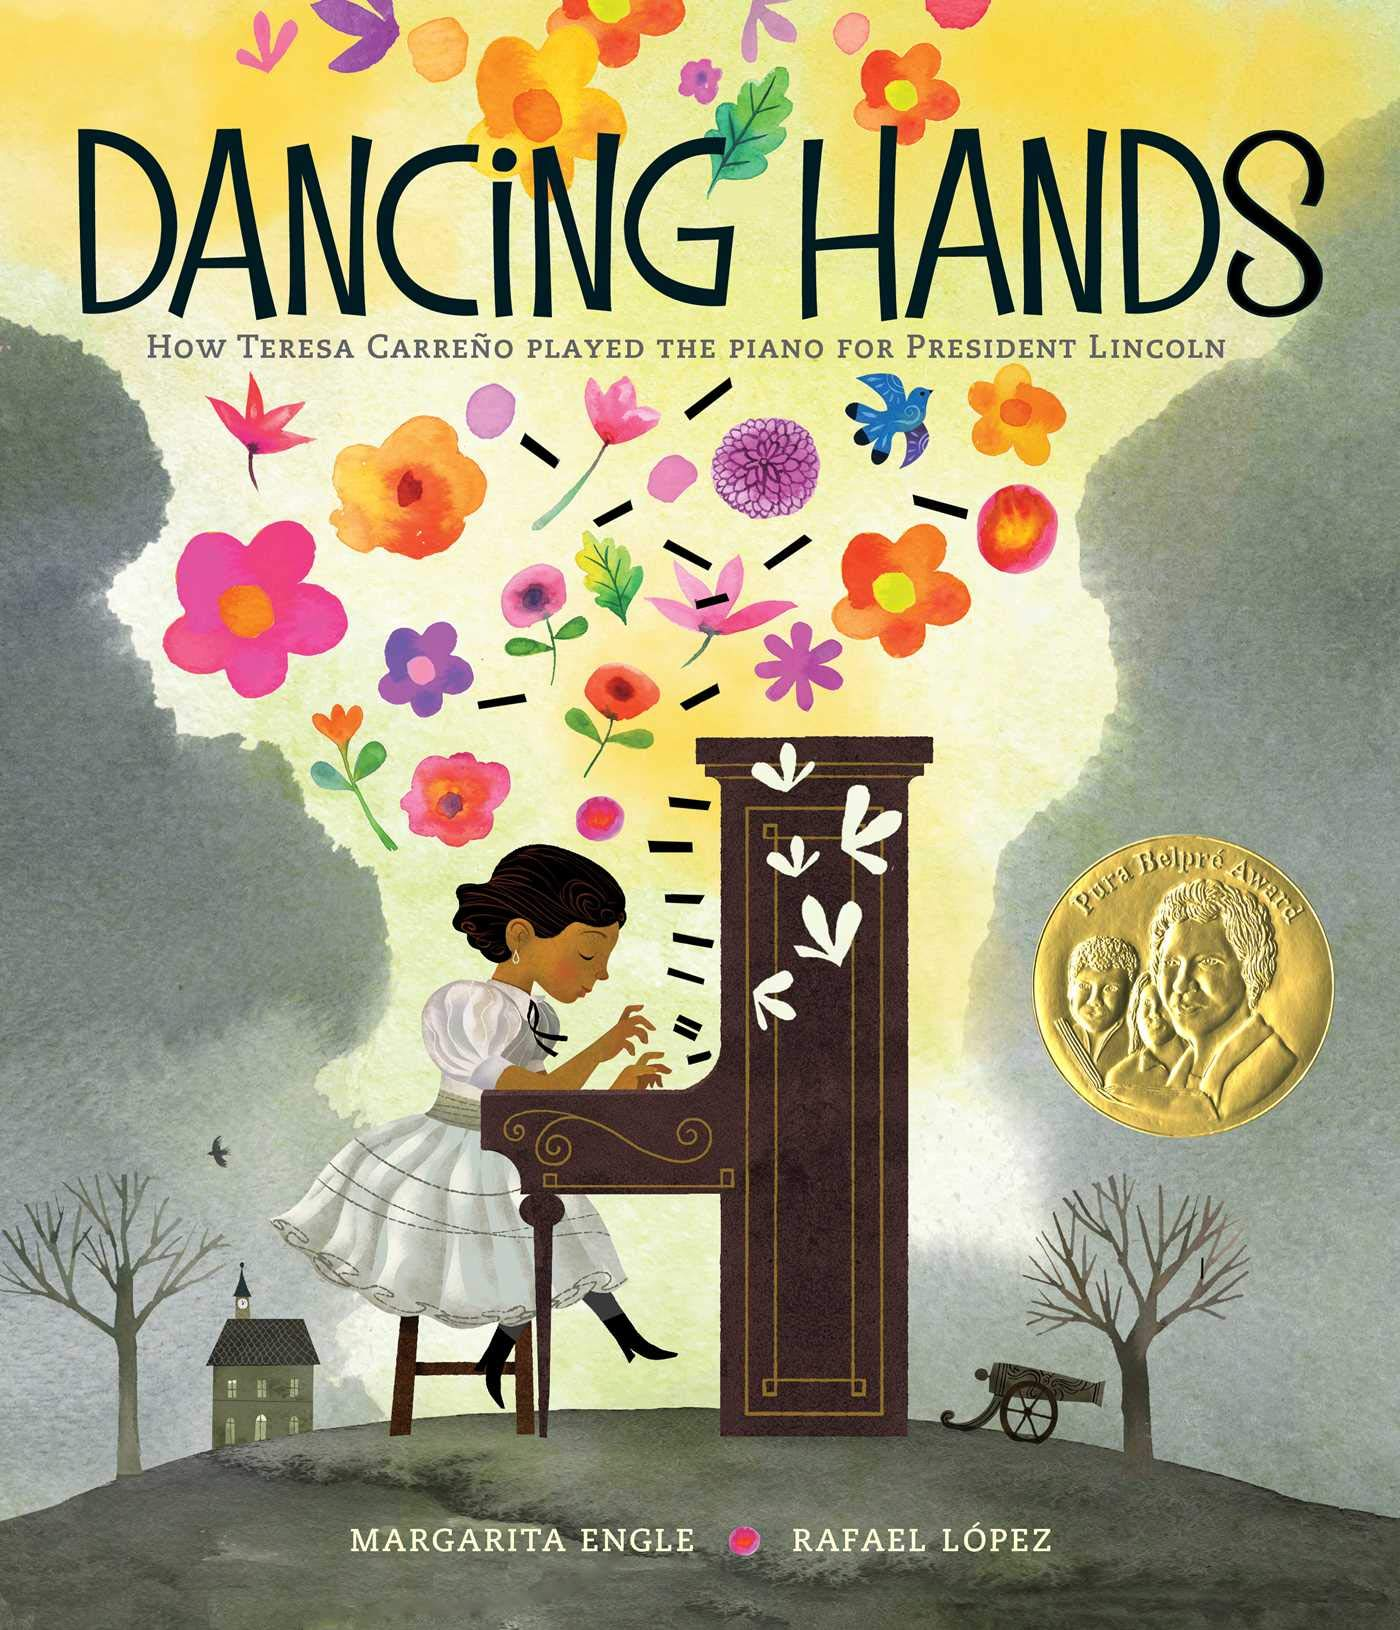 Latinx books: Dancing Hands: How Teresa Carreño Played the Piano for President Lincoln